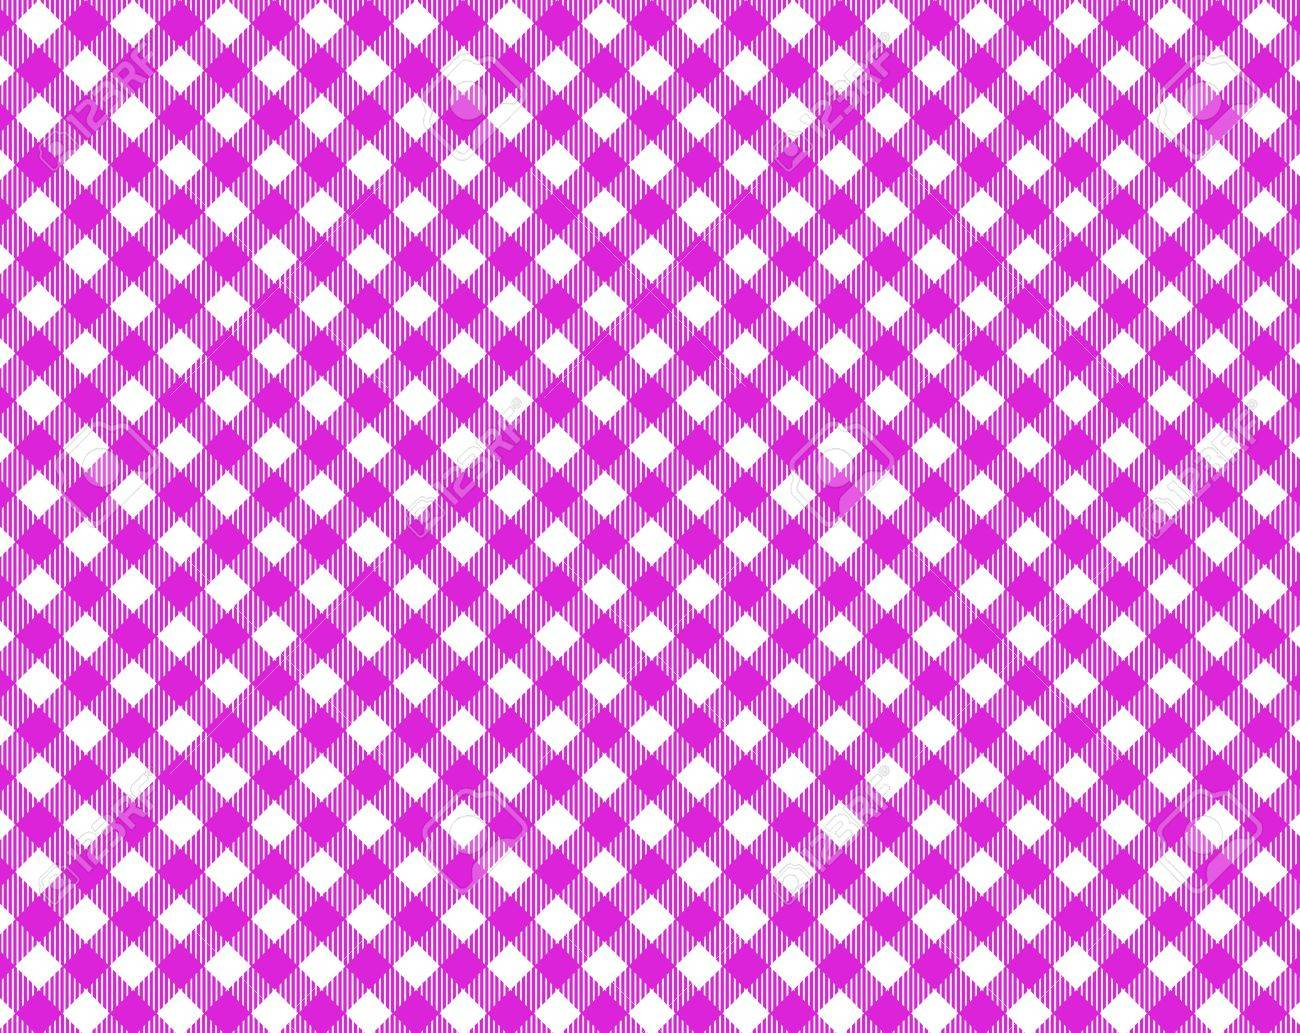 Pink White Checkered Tablecloth With Diagonal Stripes Stock Photo   17516437